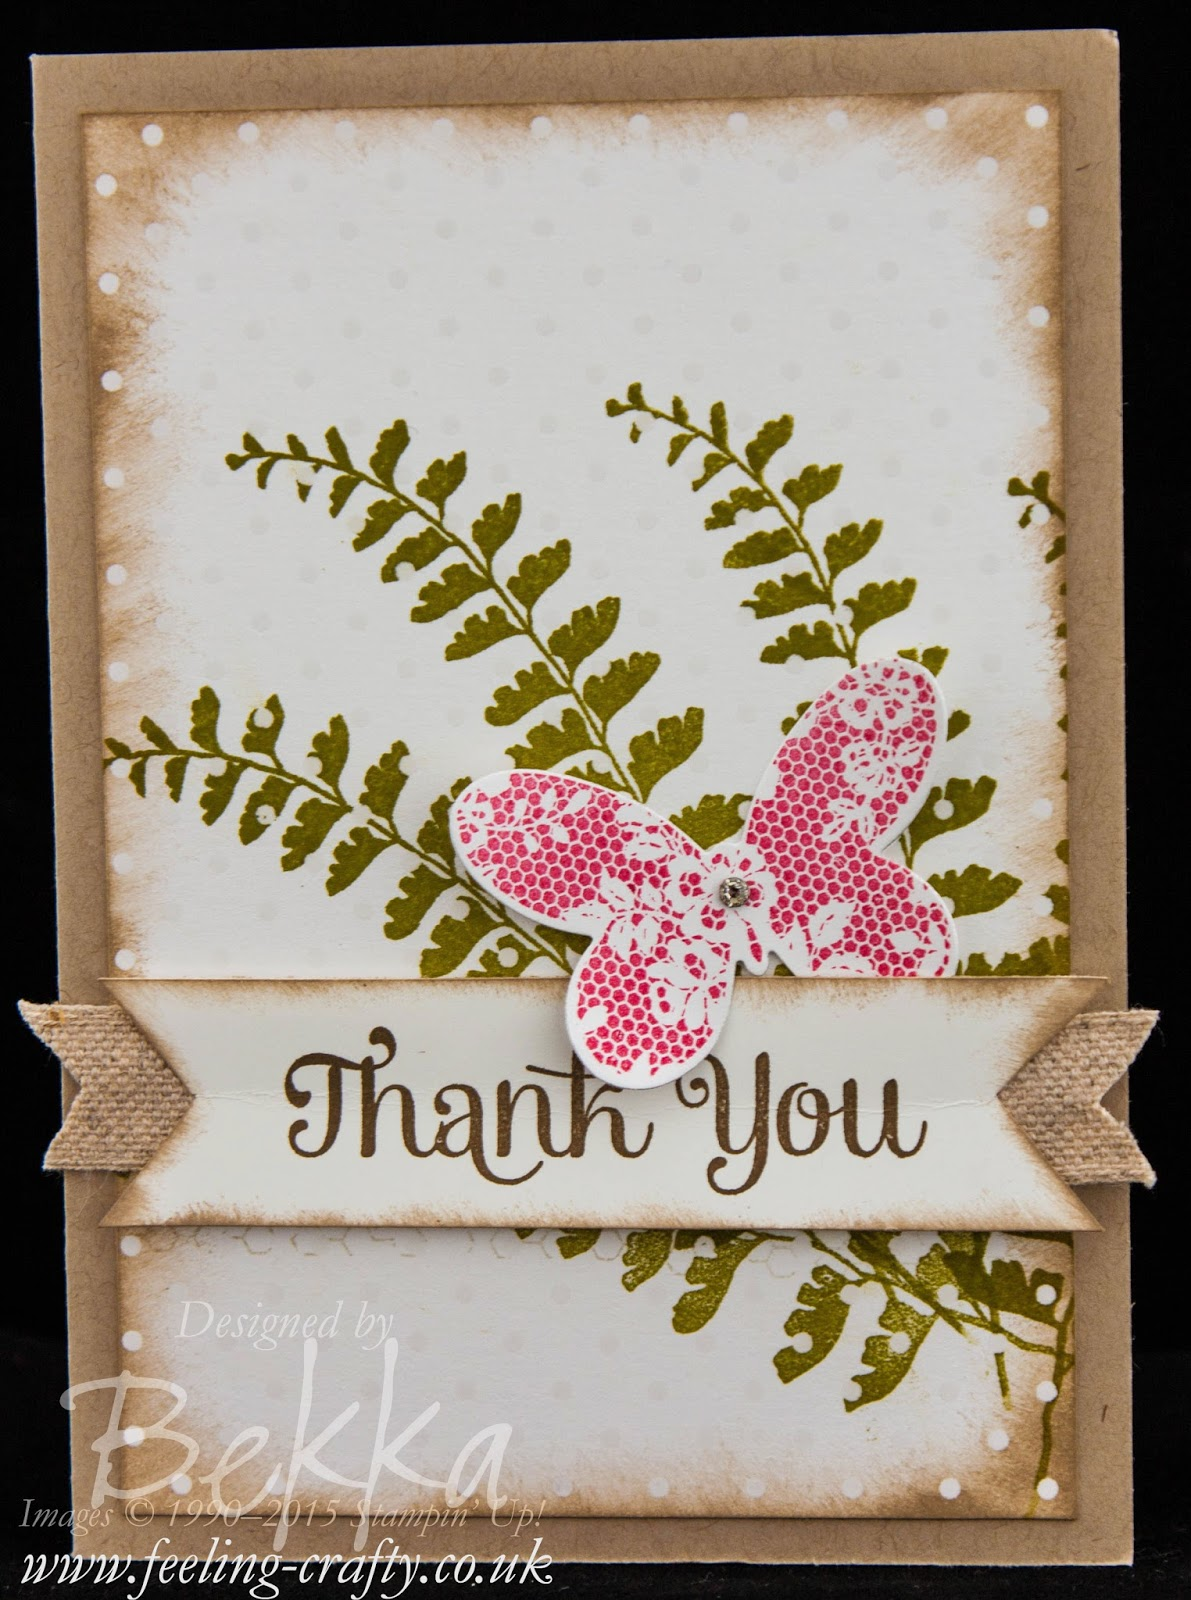 Irresistibly Yours Butterfly Basics Thank You Card - check it out here